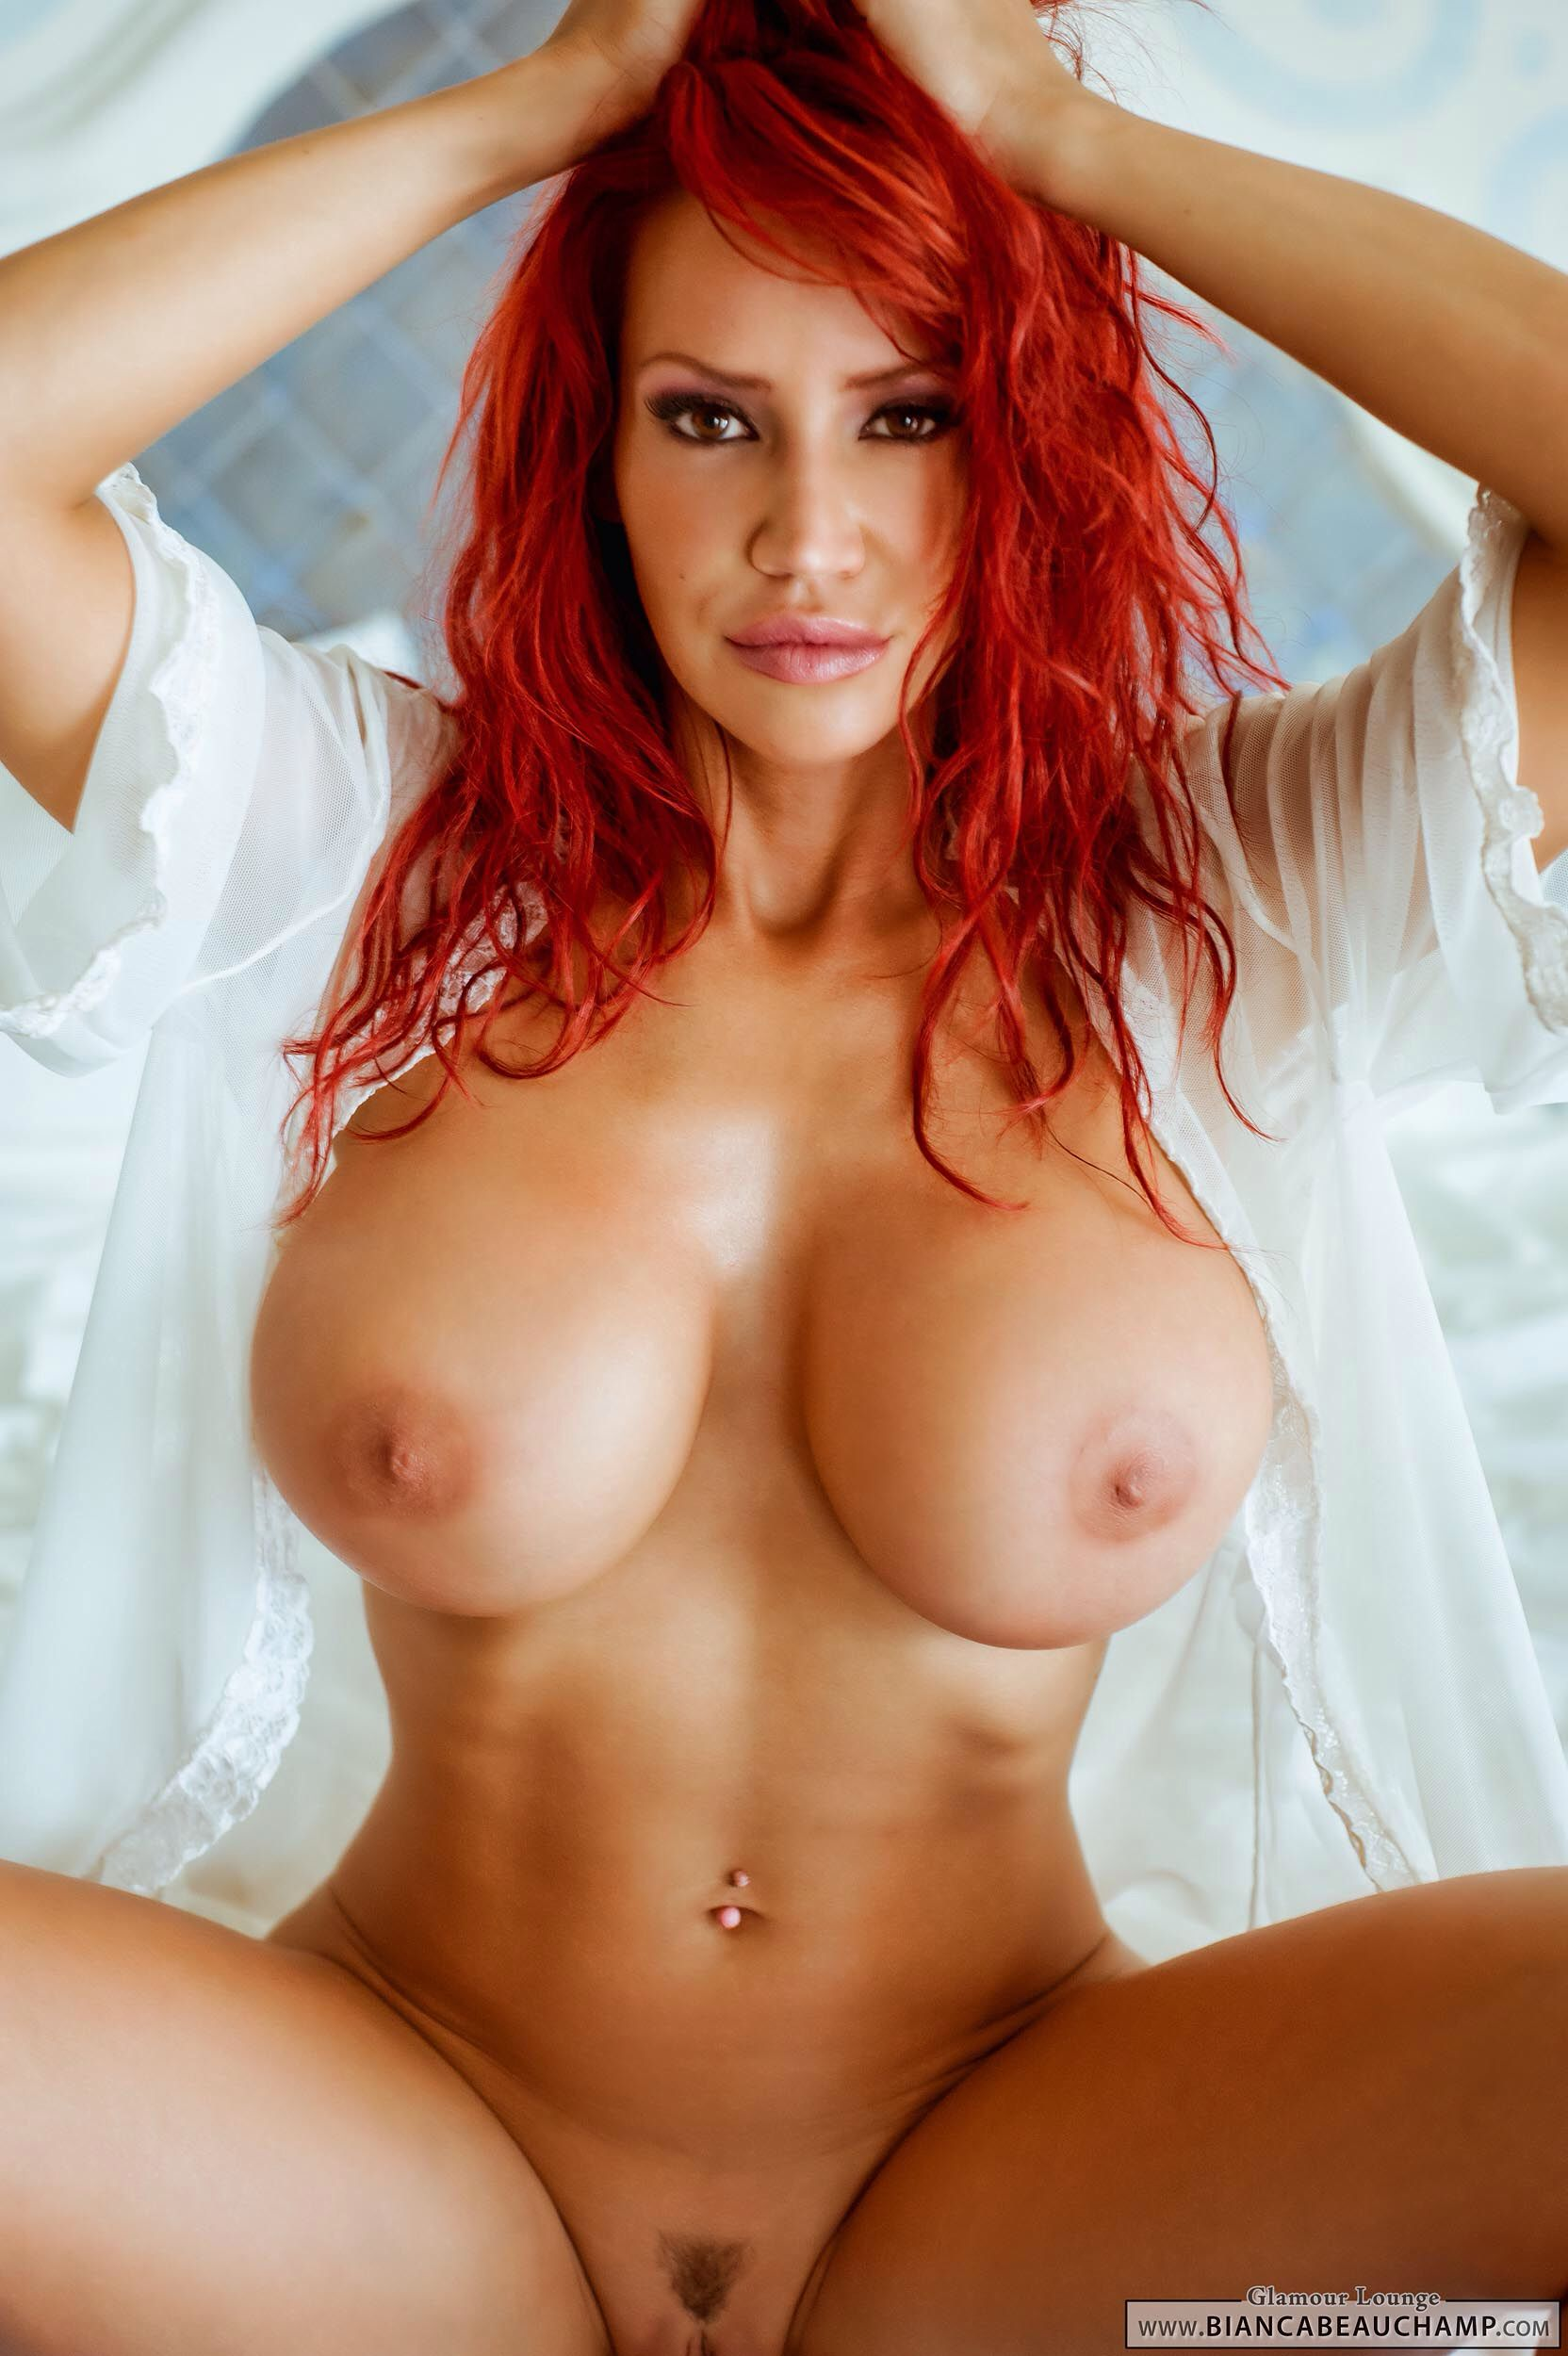 Hot Sexy Nude Women Redhead - Sexy redhead porn star Bianca Beauchamp naked on bed gallery